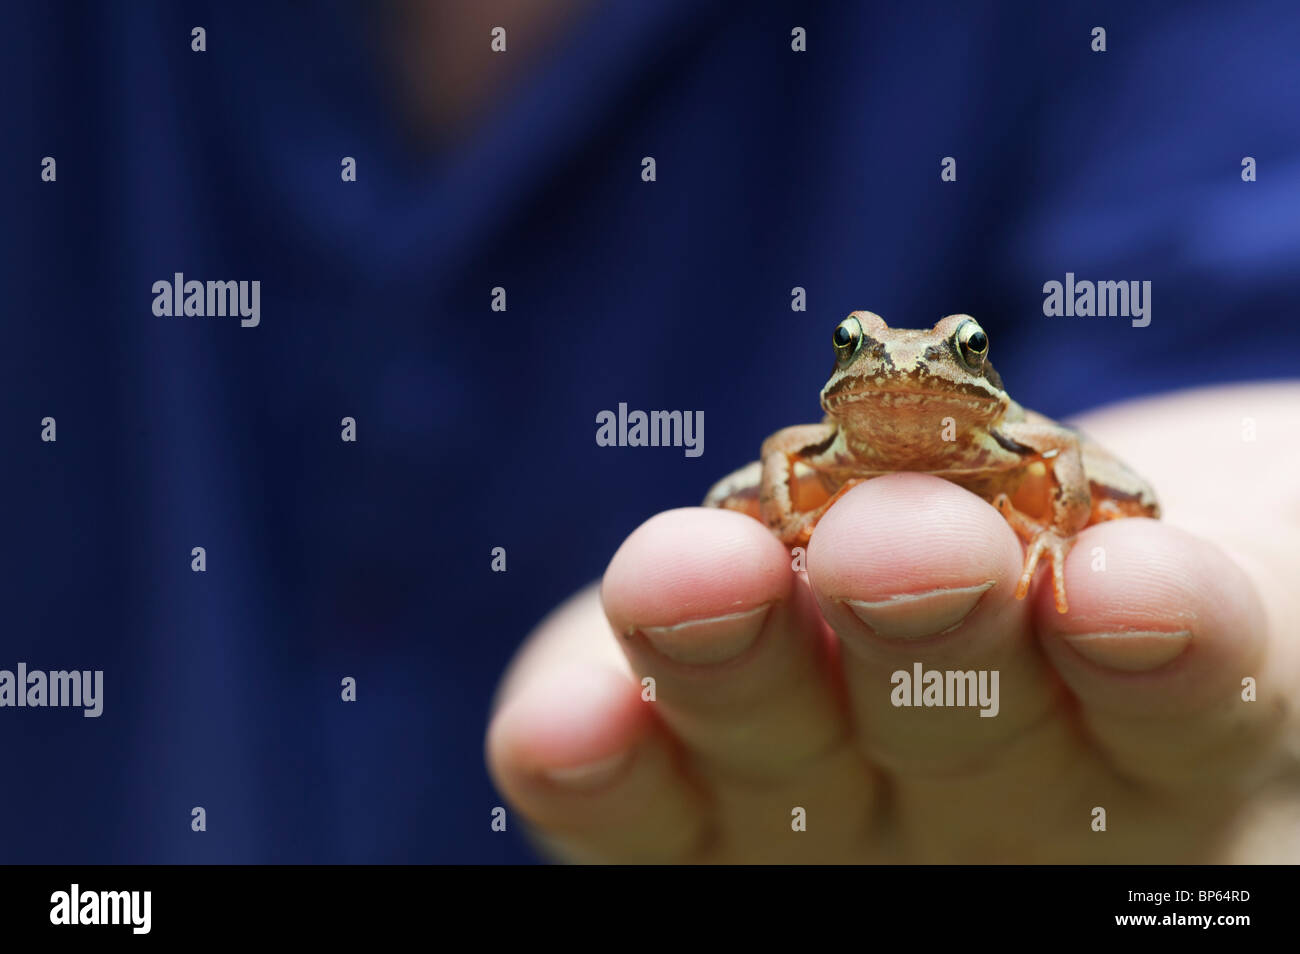 Rana Temporaria. Common garden Frog sitting on a mans hand - Stock Image